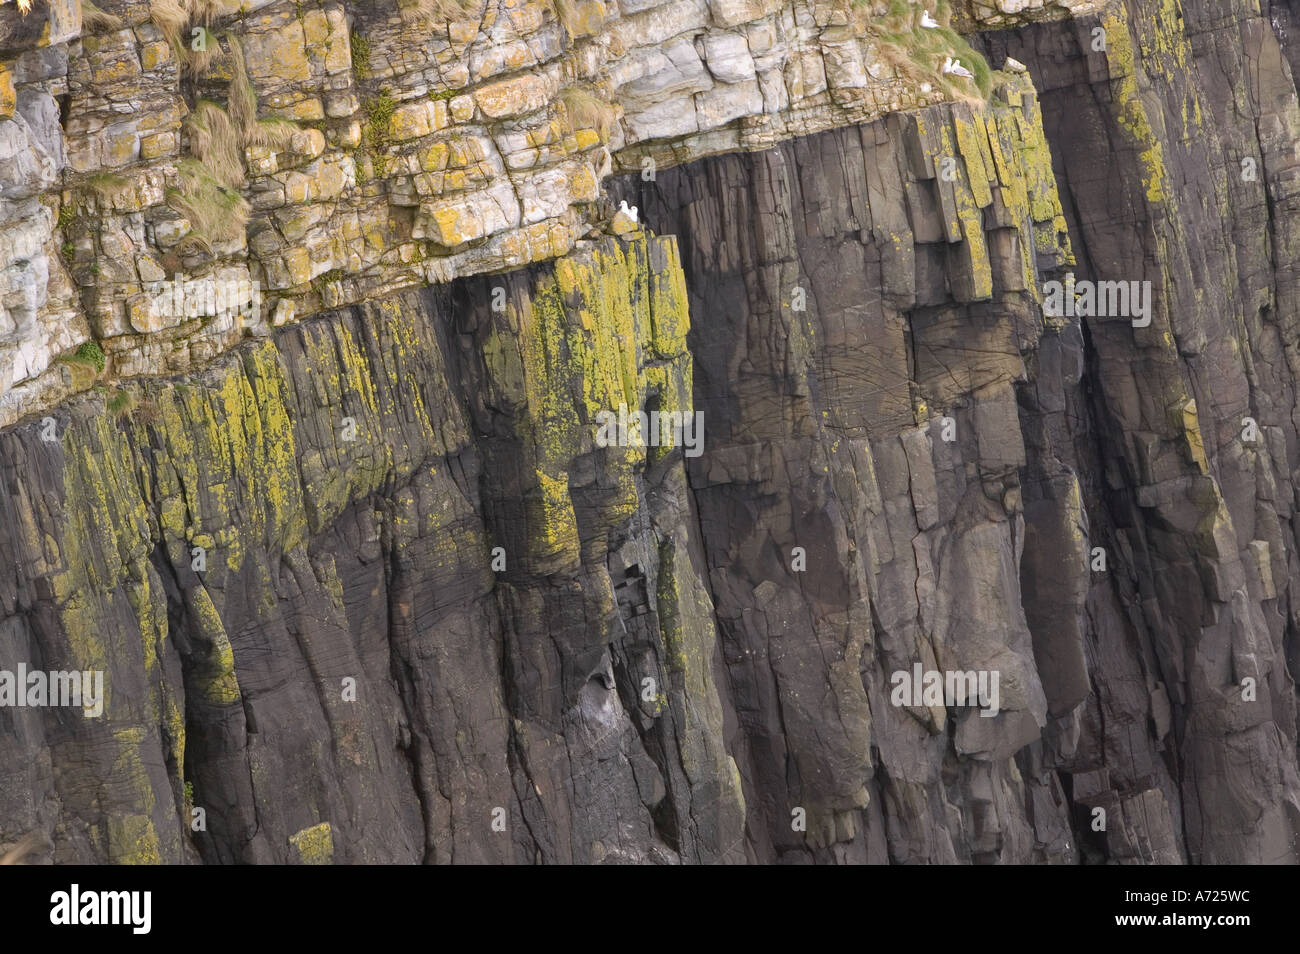 an geological unconformity in a sea cliff on the Trotternsih Peninsular, Isle of Skye, Scotland, UK - Stock Image